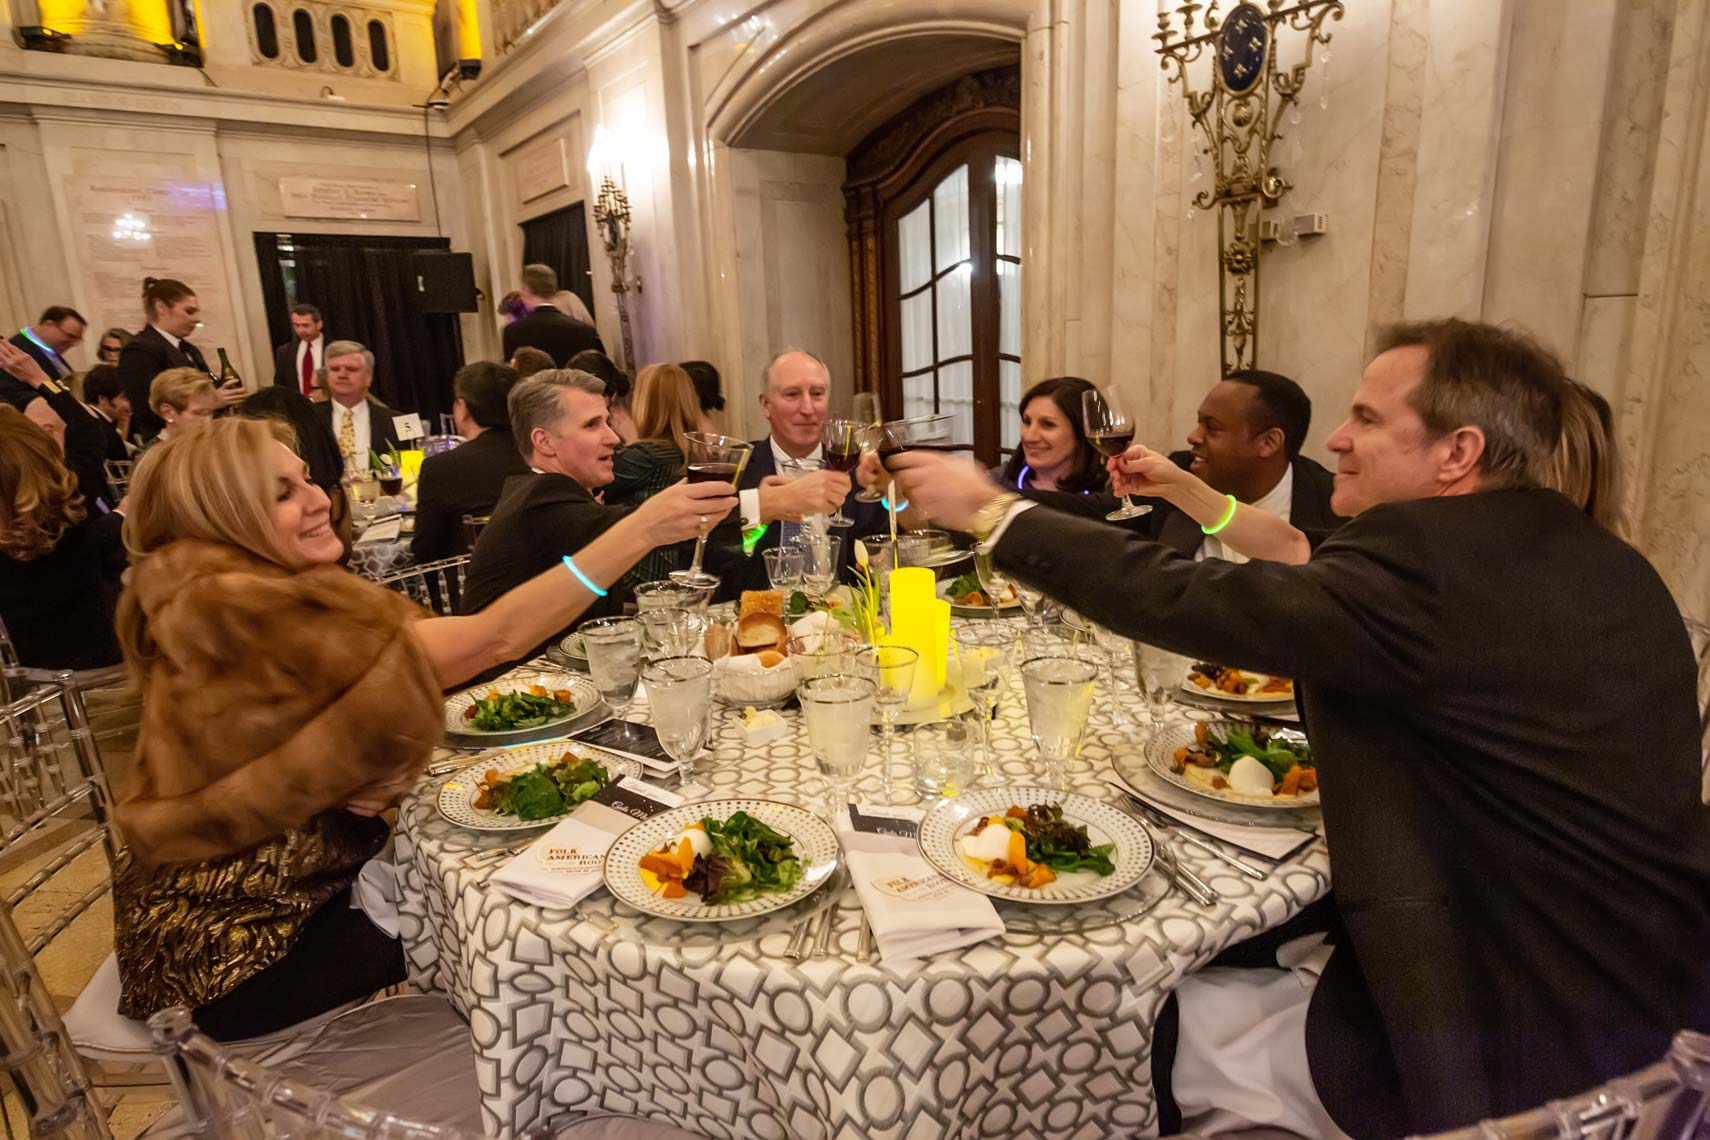 Gala dinner guests toast to a wonderful evening